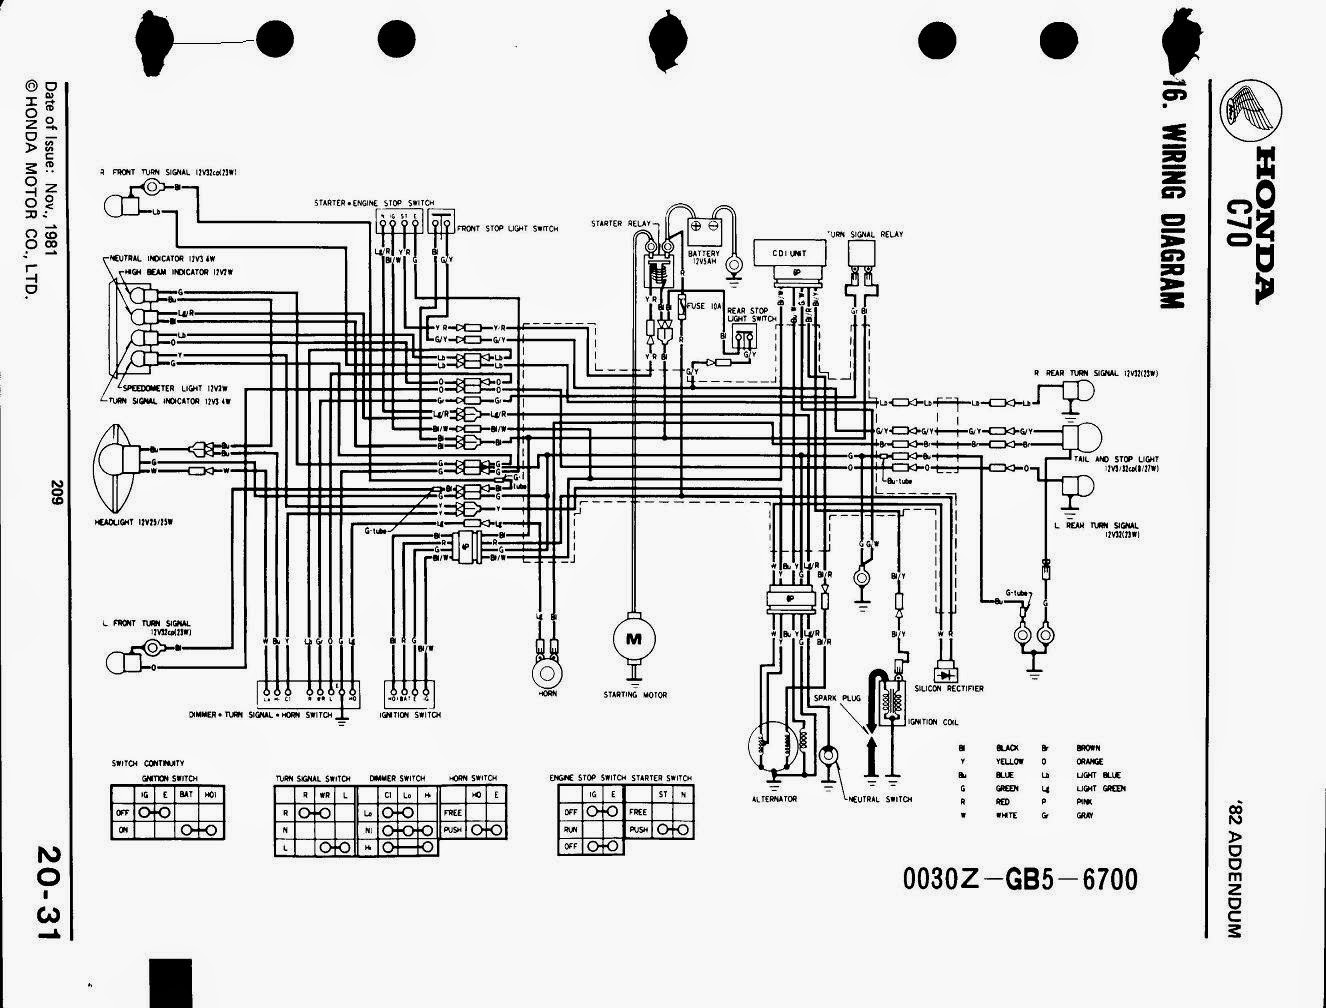 WRG-7489] Xl350 Wiring Diagram on switch diagrams, internet of things diagrams, transformer diagrams, honda motorcycle repair diagrams, motor diagrams, smart car diagrams, battery diagrams, friendship bracelet diagrams, gmc fuse box diagrams, lighting diagrams, engine diagrams, electrical diagrams, troubleshooting diagrams, electronic circuit diagrams, pinout diagrams, led circuit diagrams, hvac diagrams, series and parallel circuits diagrams, sincgars radio configurations diagrams,